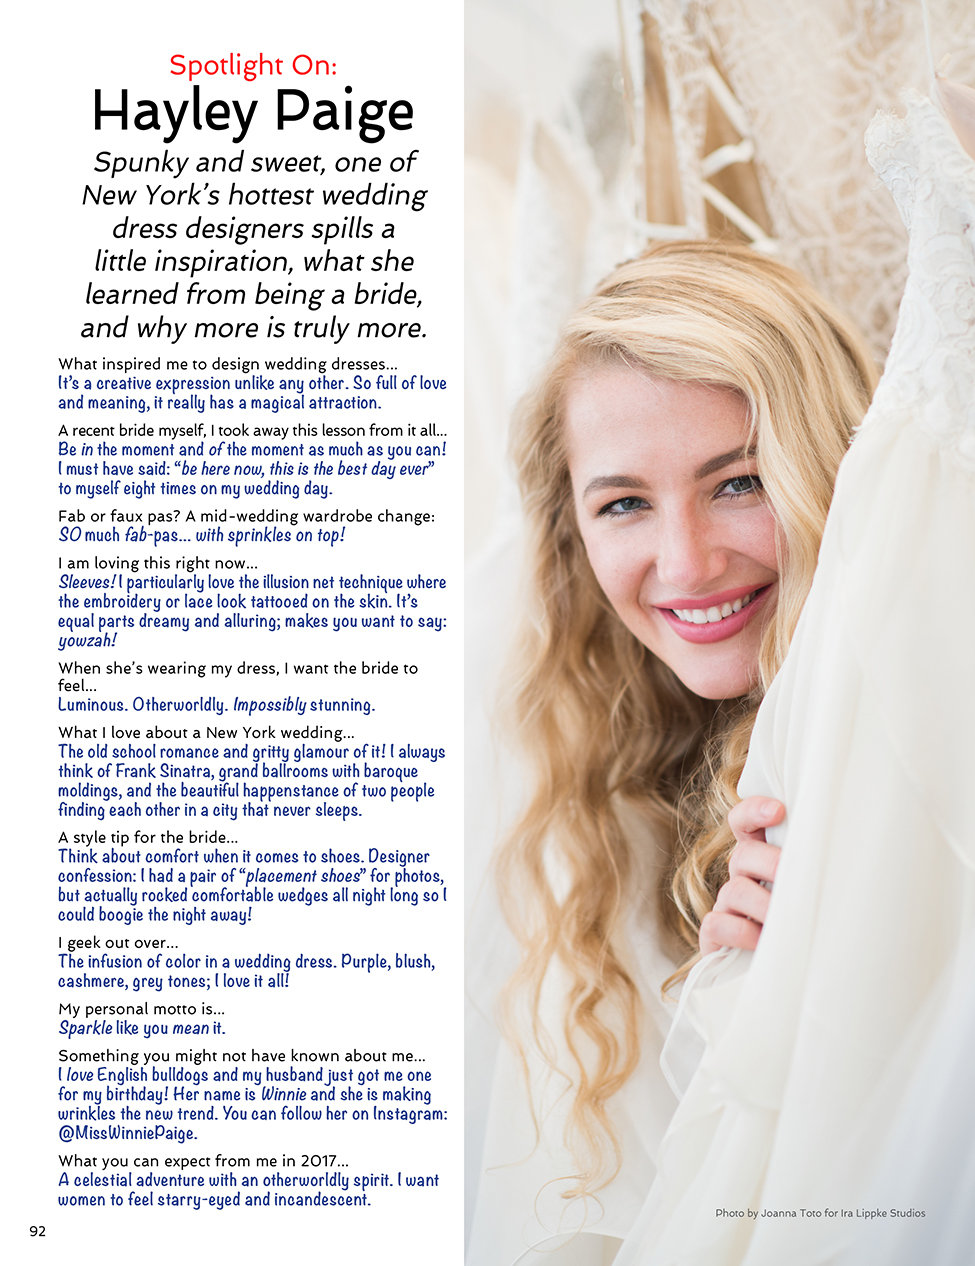 Sophisticated Weddings New York Hayley Paige